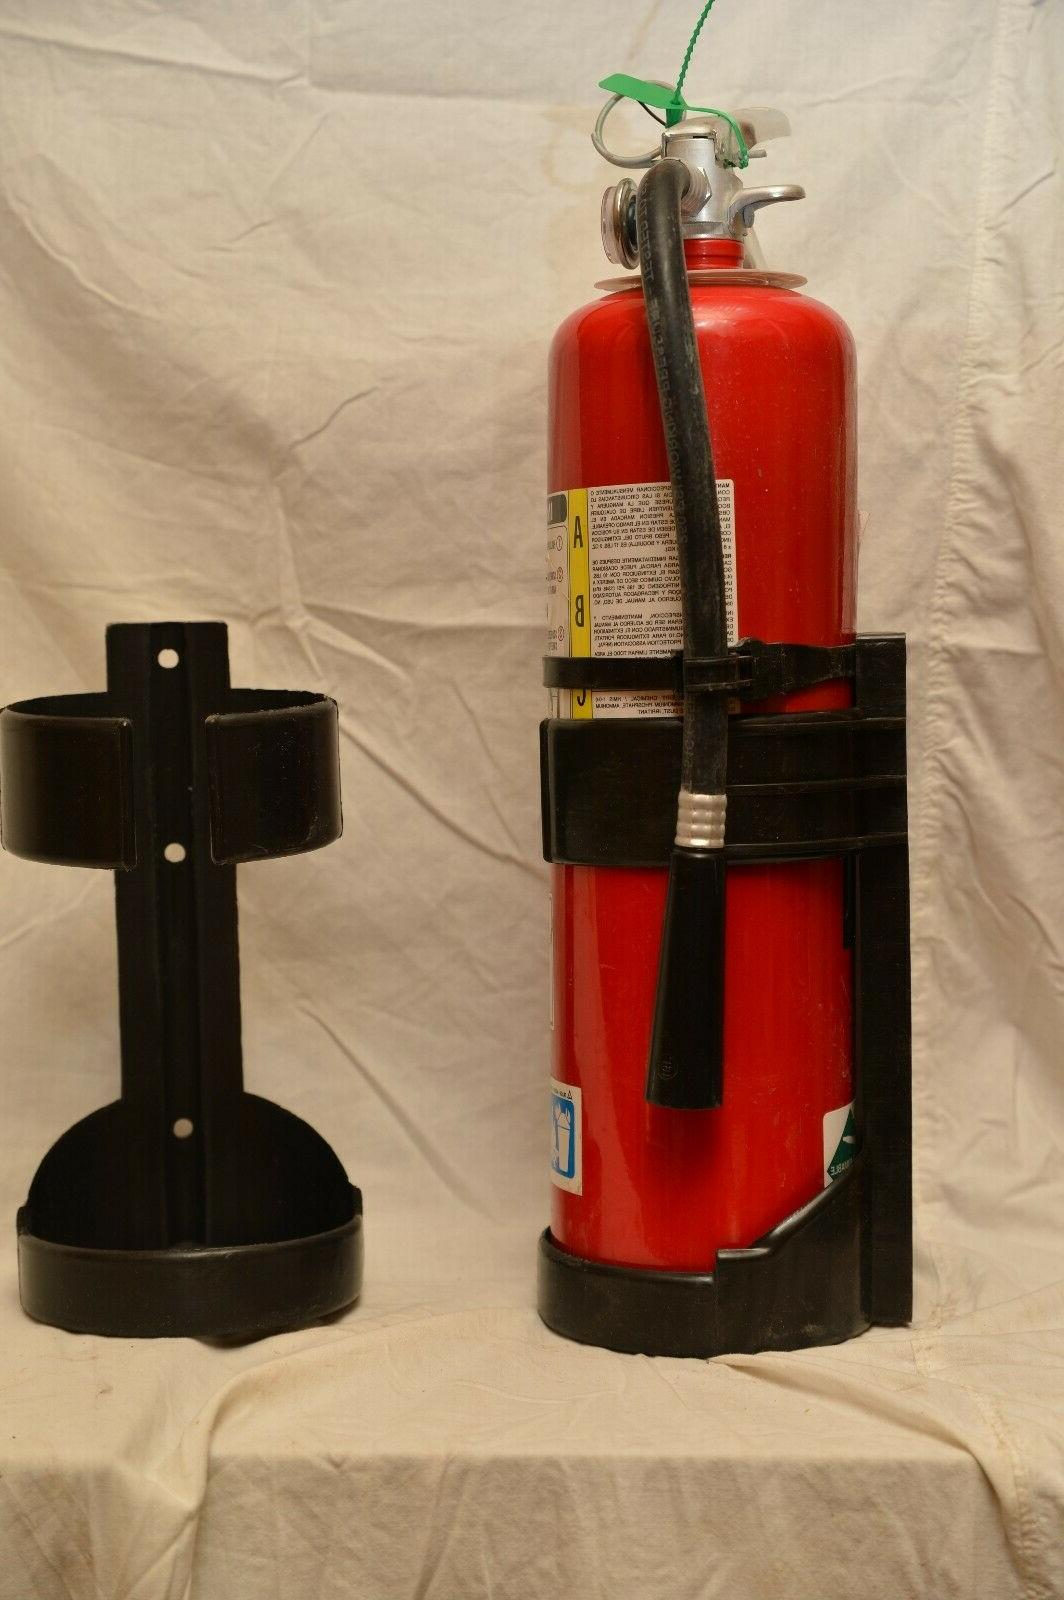 UNIVERSAL 10LB FIRE EXTINGUISHER BLACK ABS PLASTIC VEHICLE B